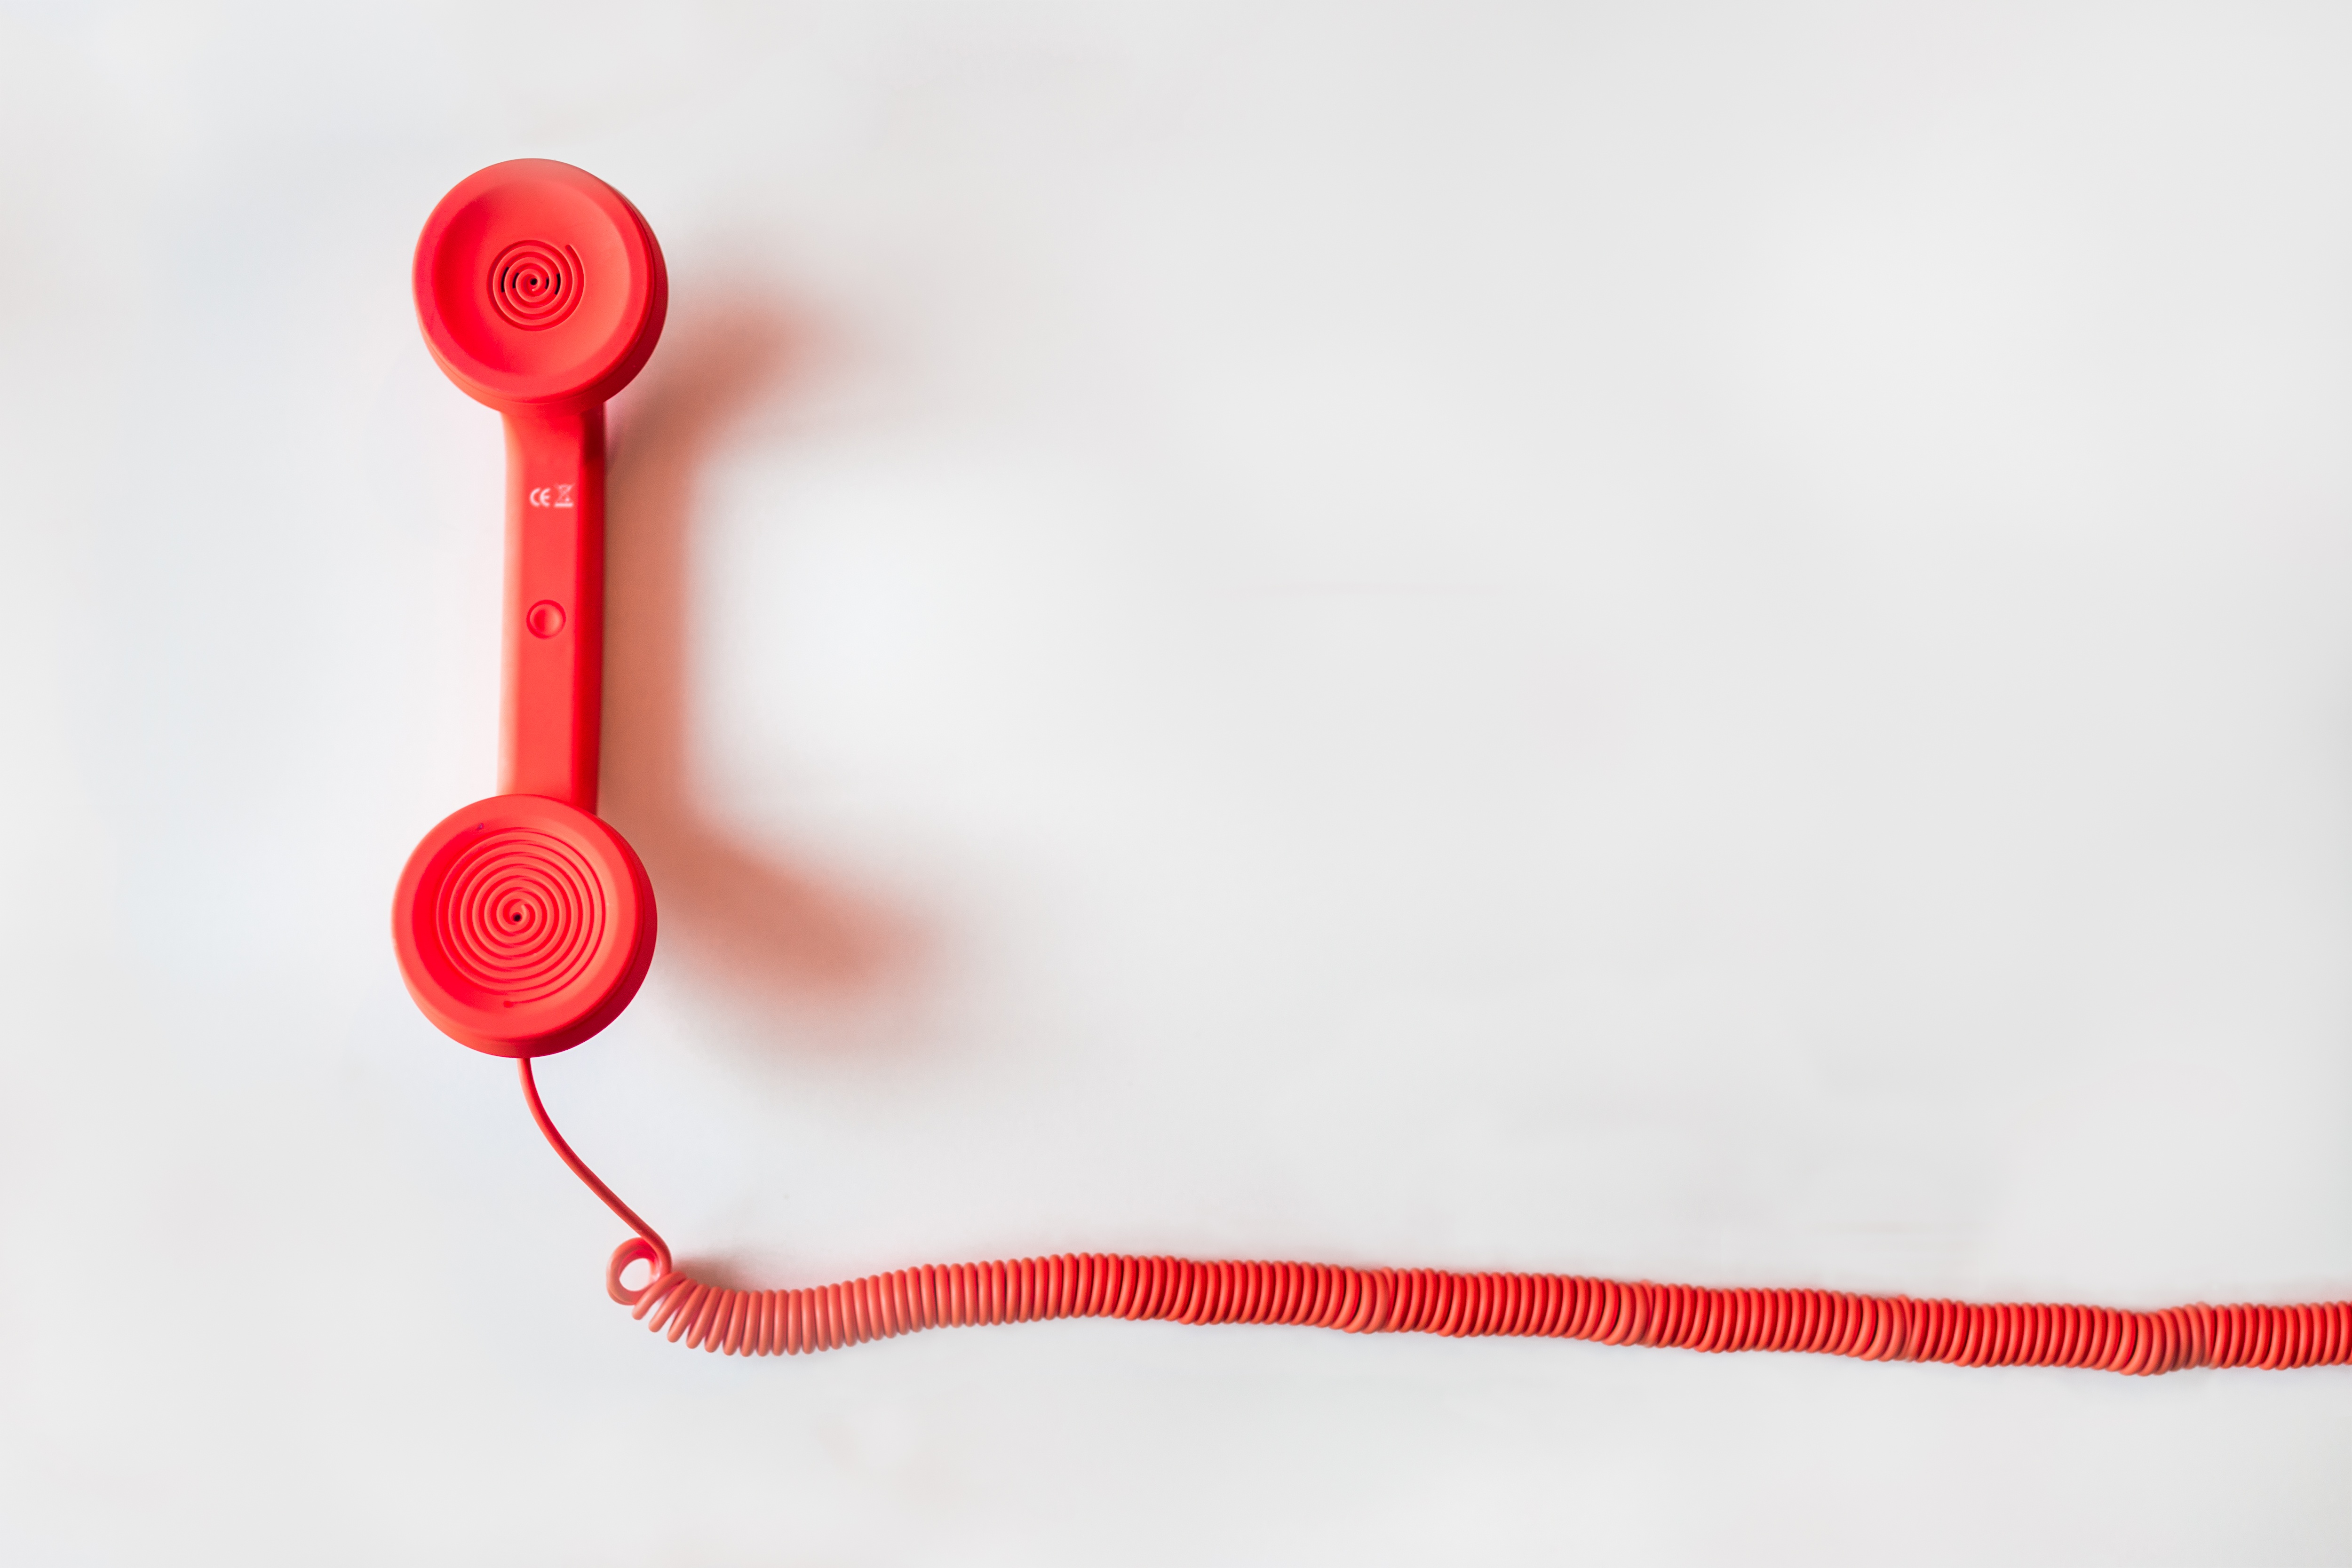 Bright red corded phone against white background.